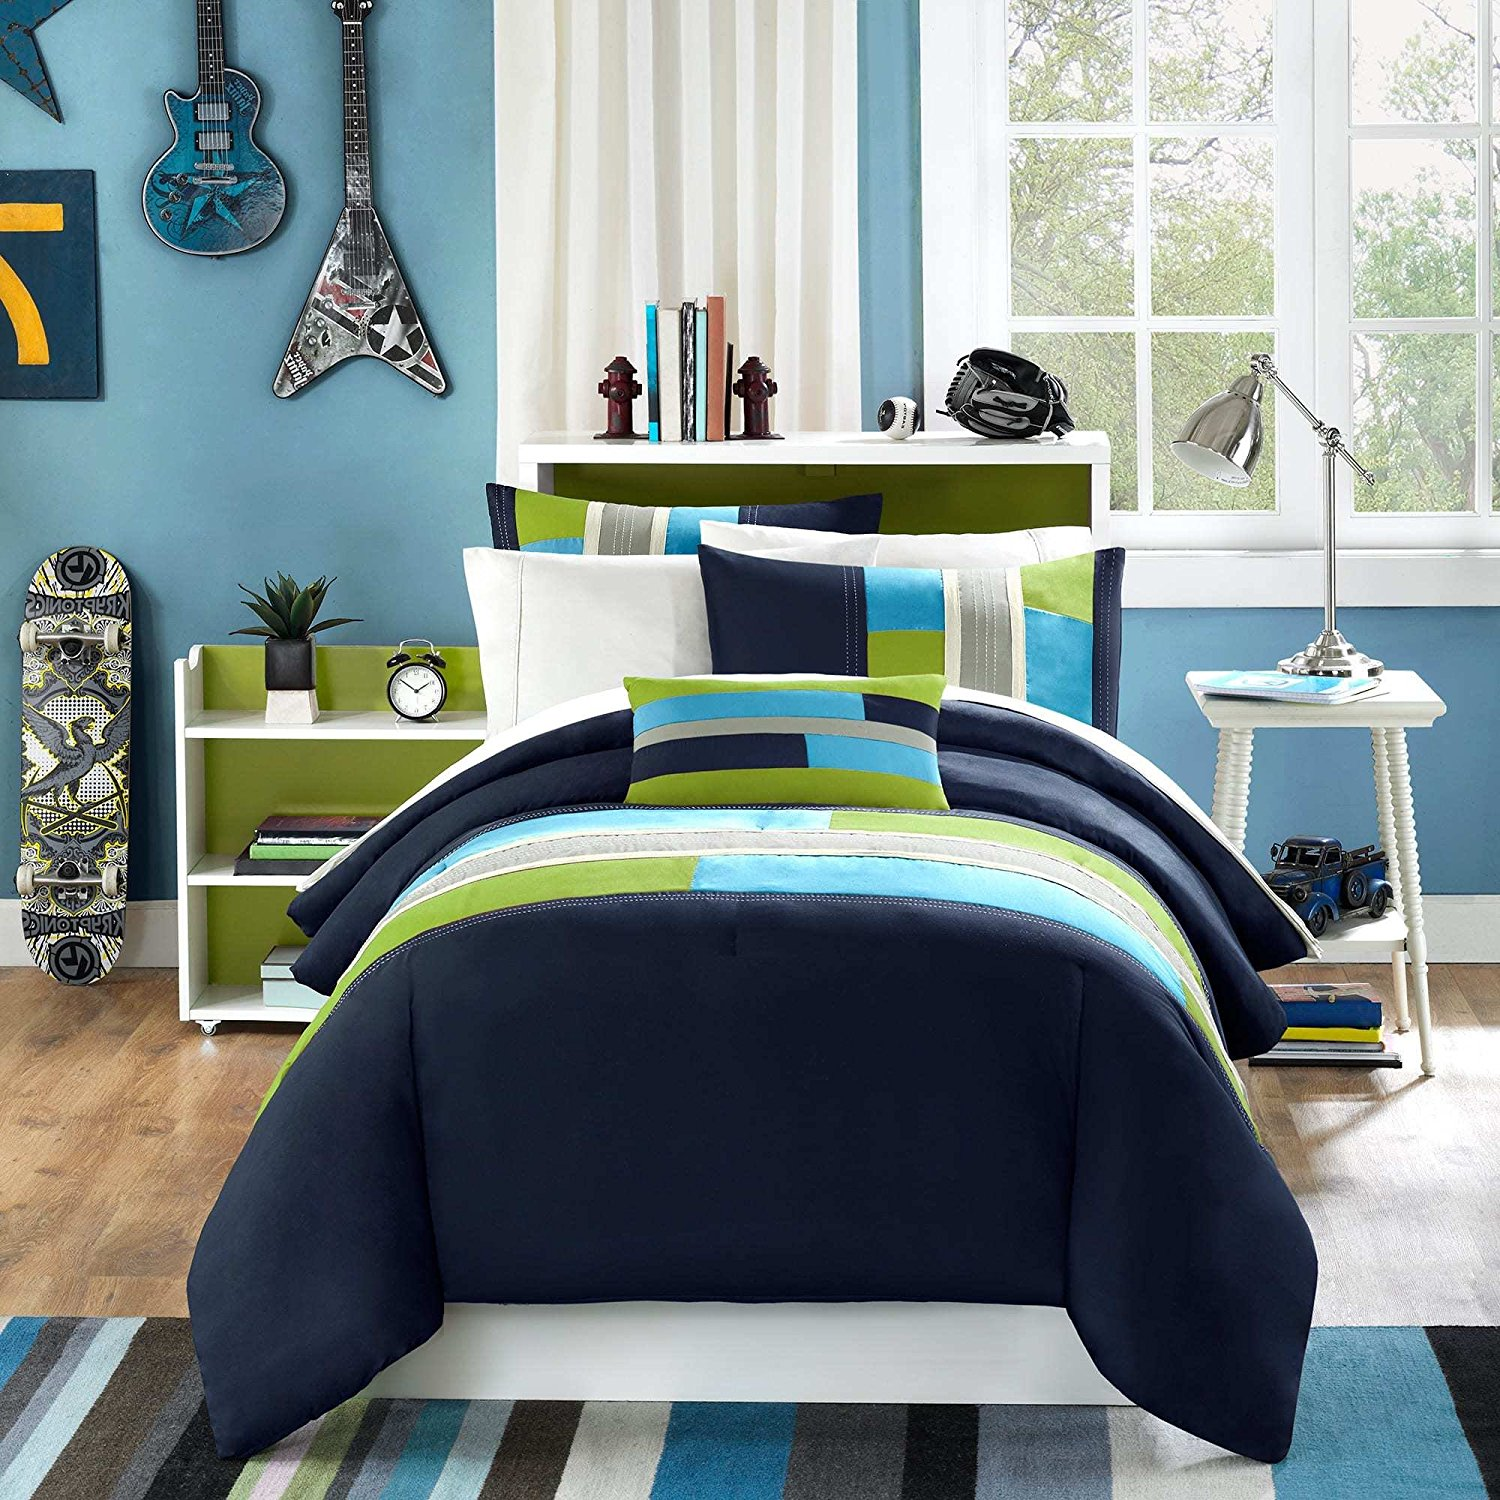 4 Piece Full Queen Navy Teal Blue Olive Green Rugby Striped Comforter Set, Geometric Pieced Pattern Grey Stripes Rectangle Blocks Circuit Design, Vibrant Colorful Adult Bedding, Polyester